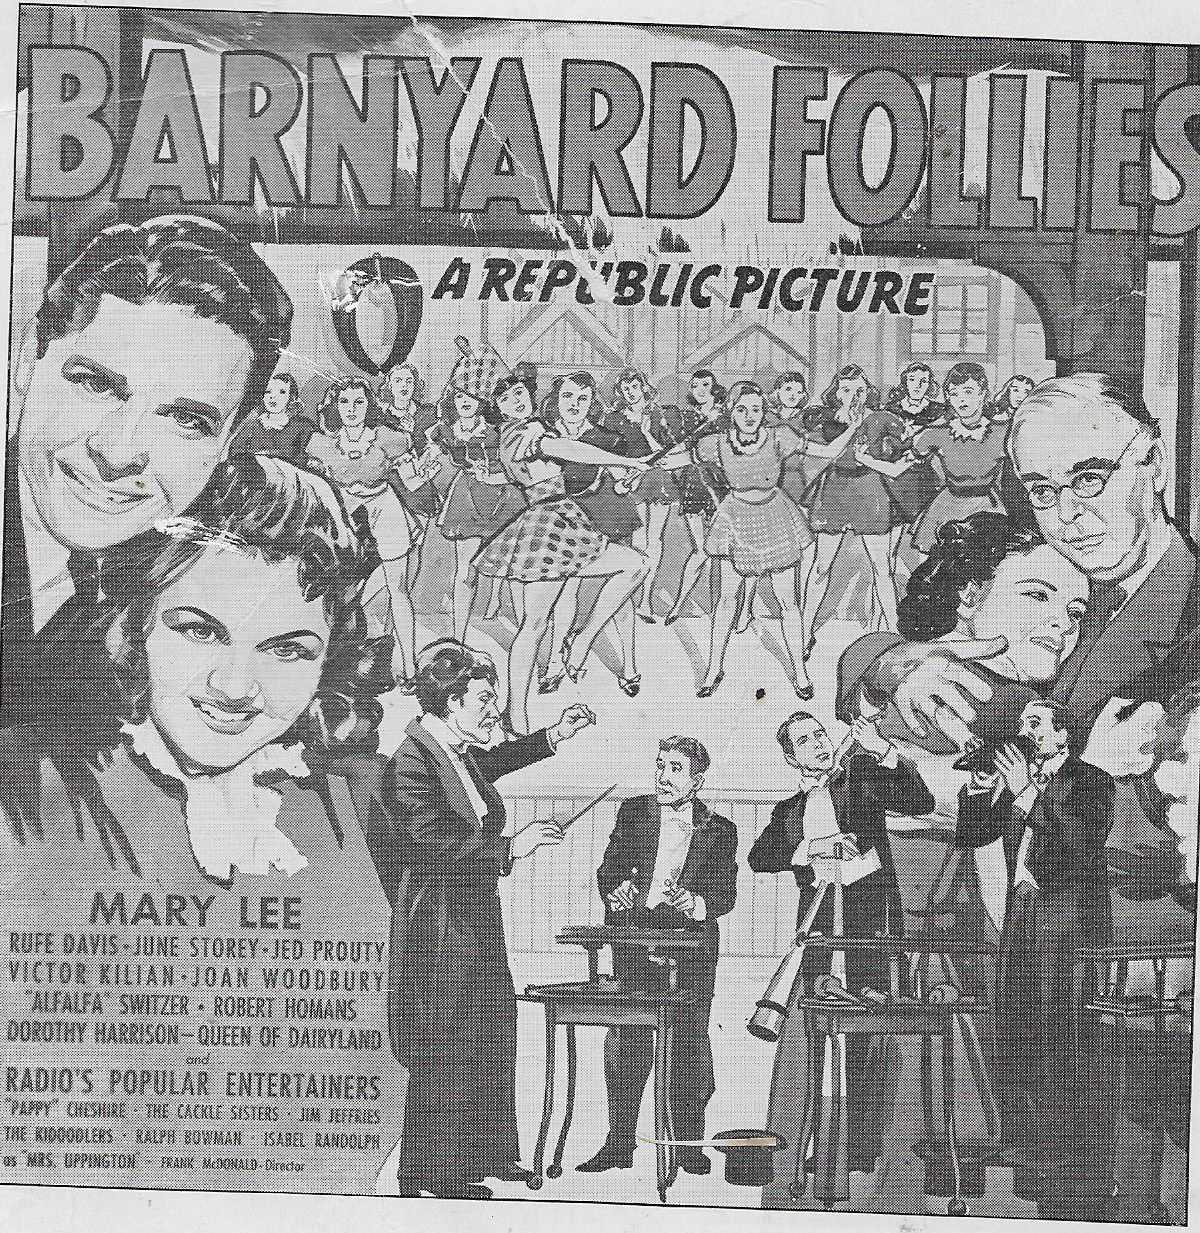 John Archer, Harry Cheshire, Mary Lee, and June Storey in Barnyard Follies (1940)